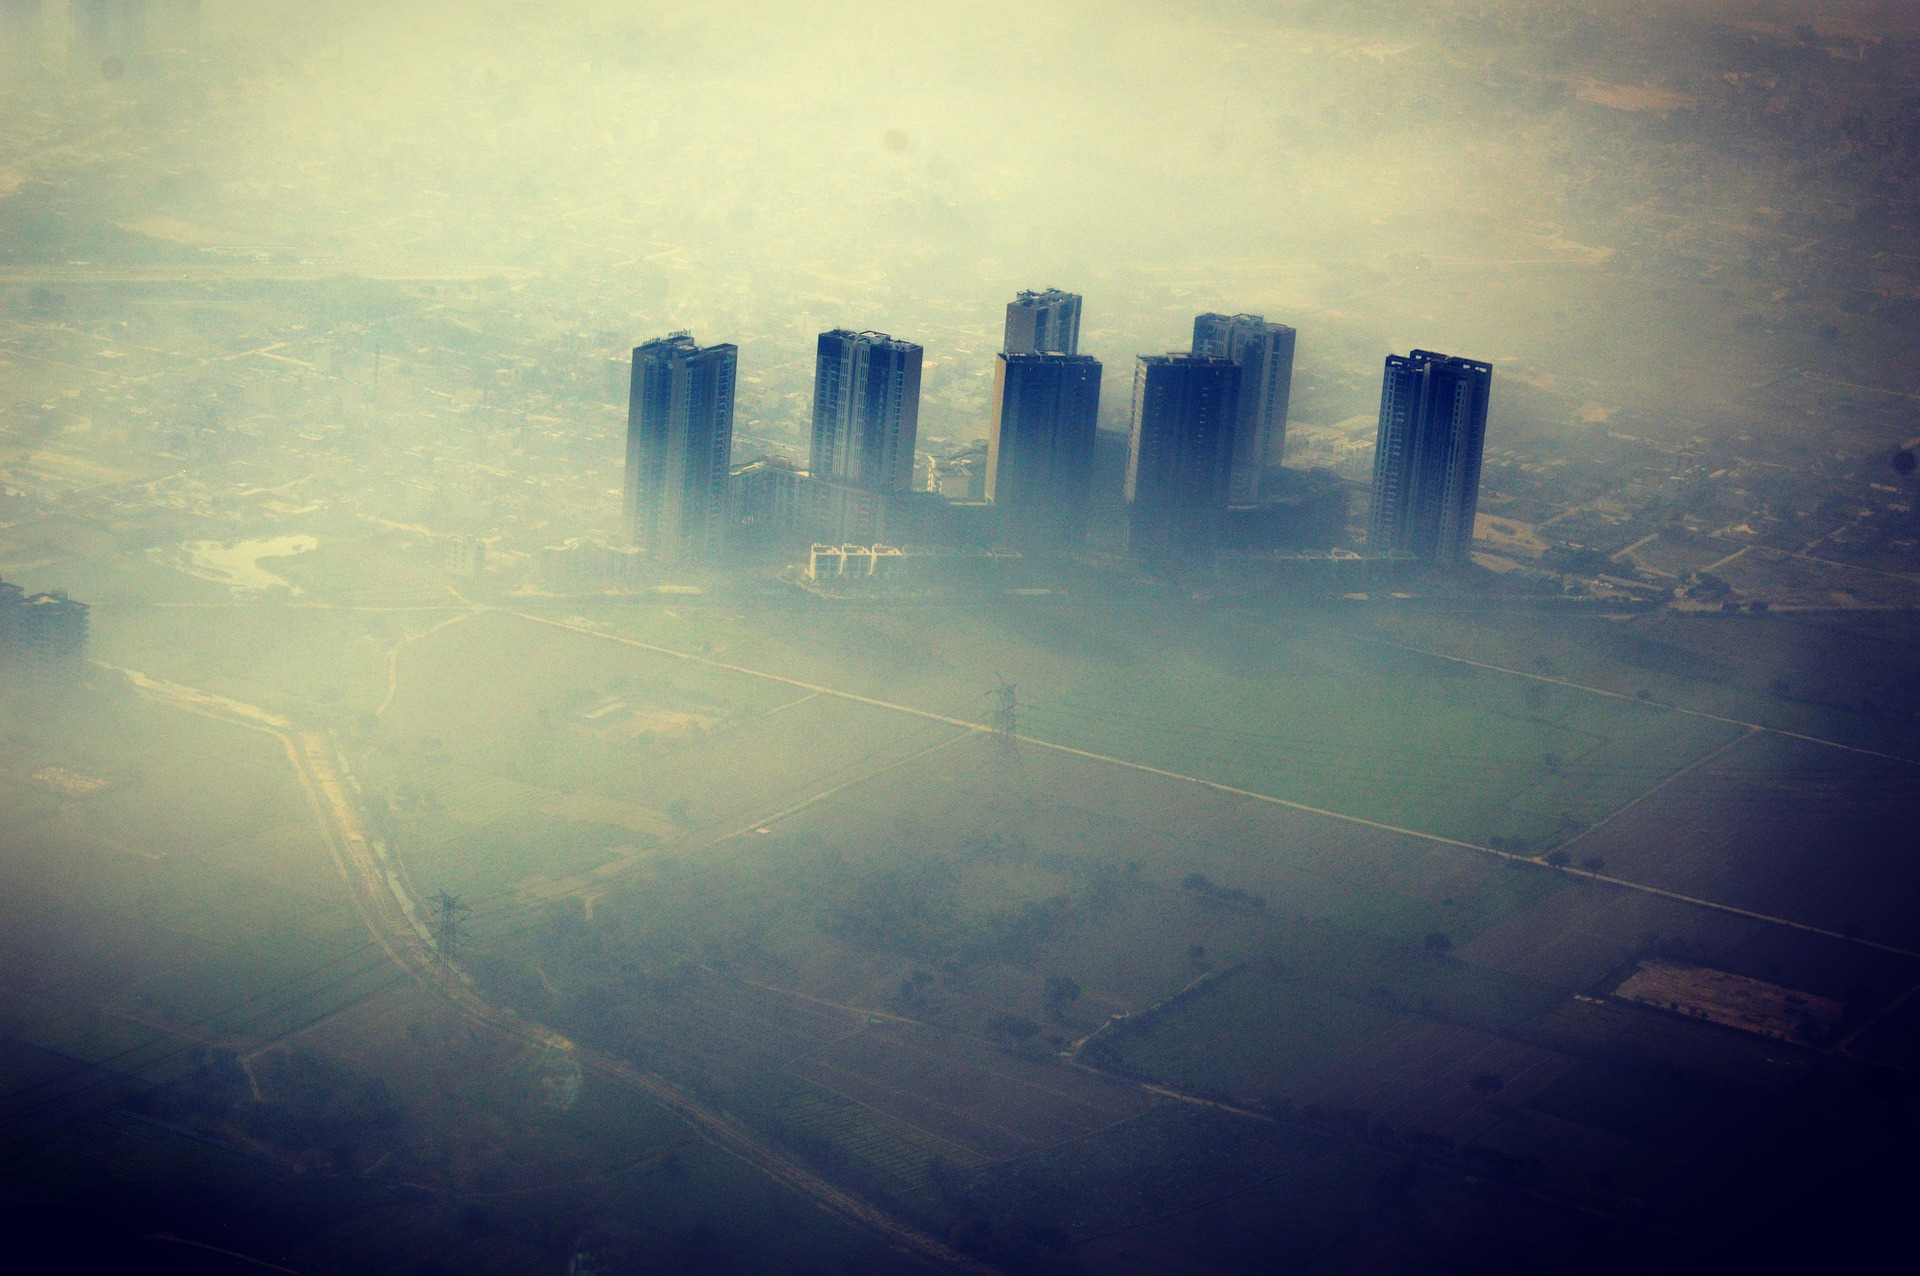 Debate: Delhi's Smog and Climate Change Are Separate Environmental Crises